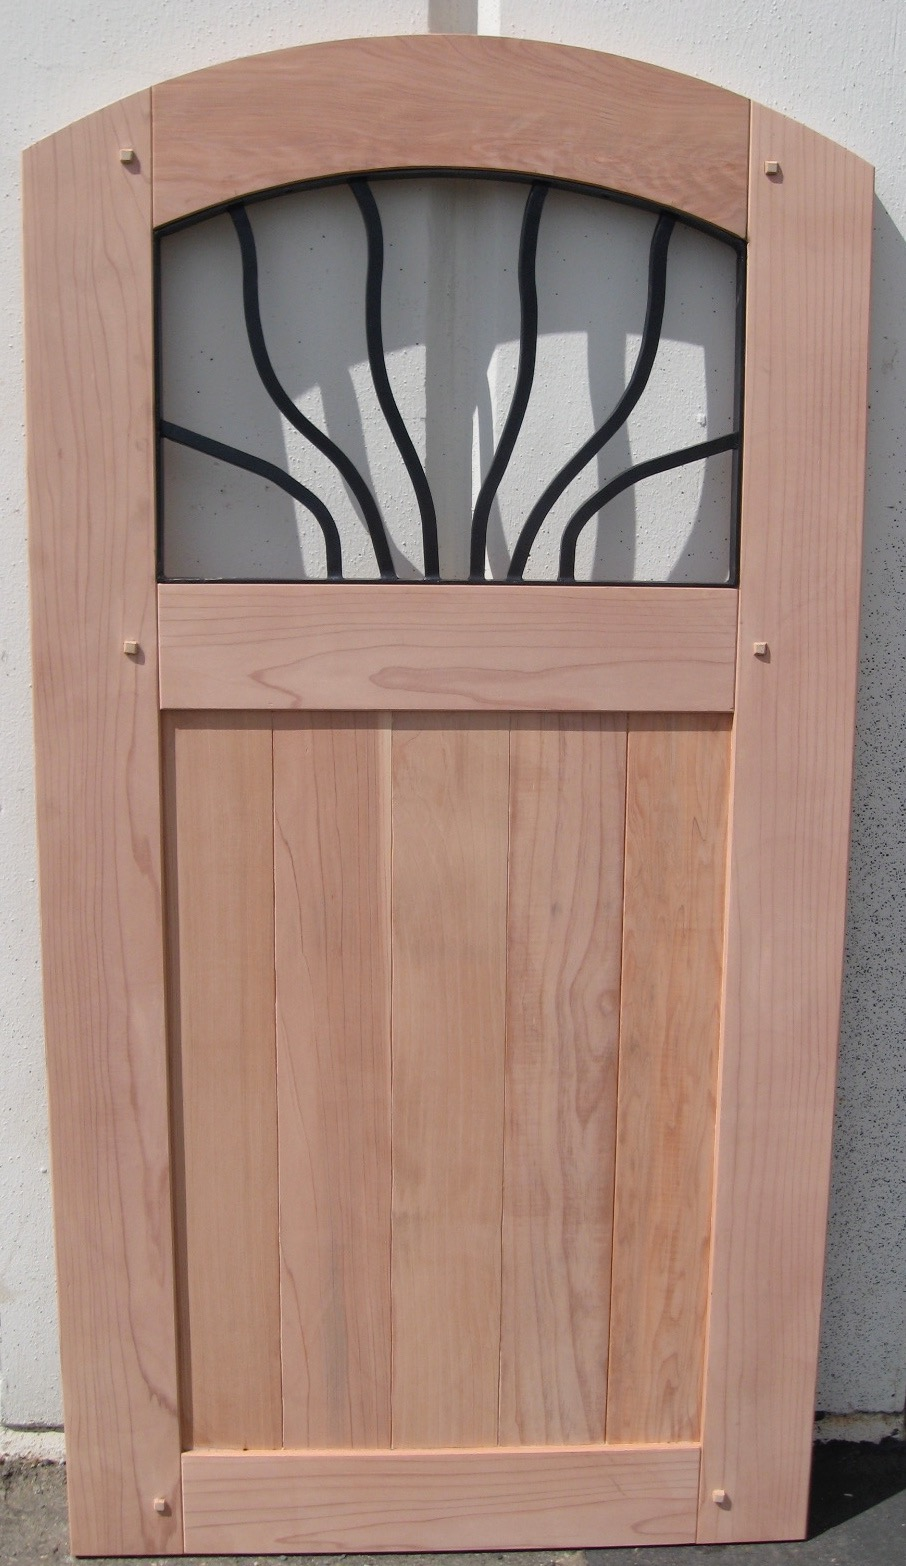 REDWOOD: STEEL GATE MADE TO ORDER